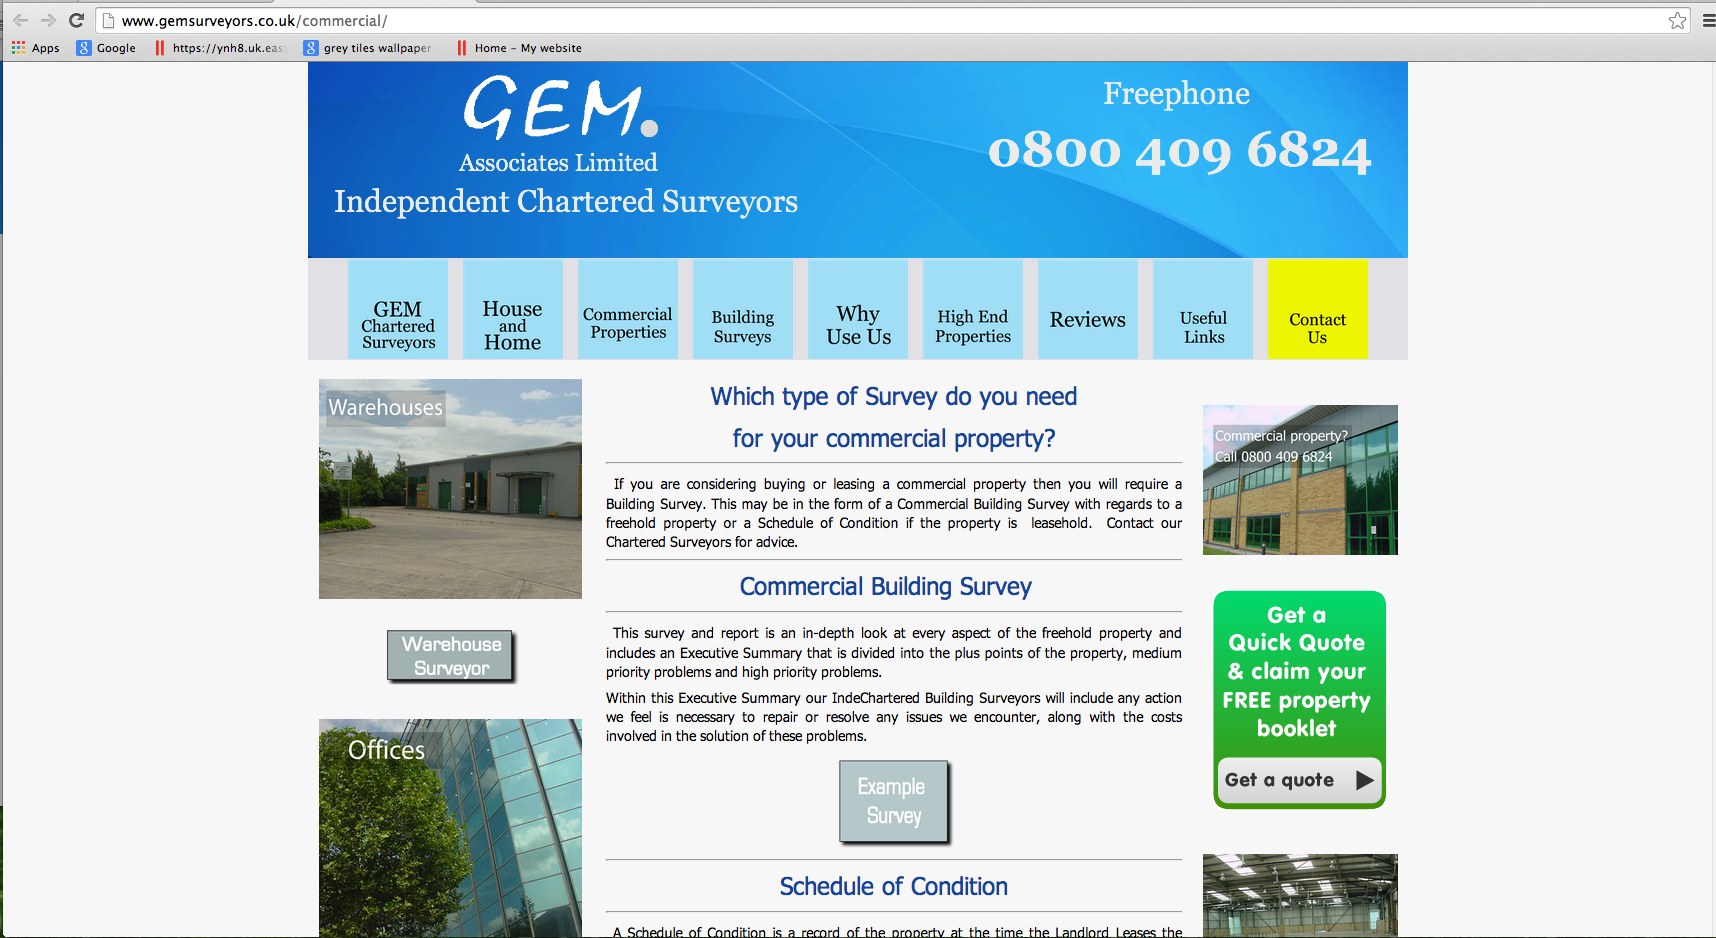 Gemsurveyors.co.uk - Commercial Property Surveys